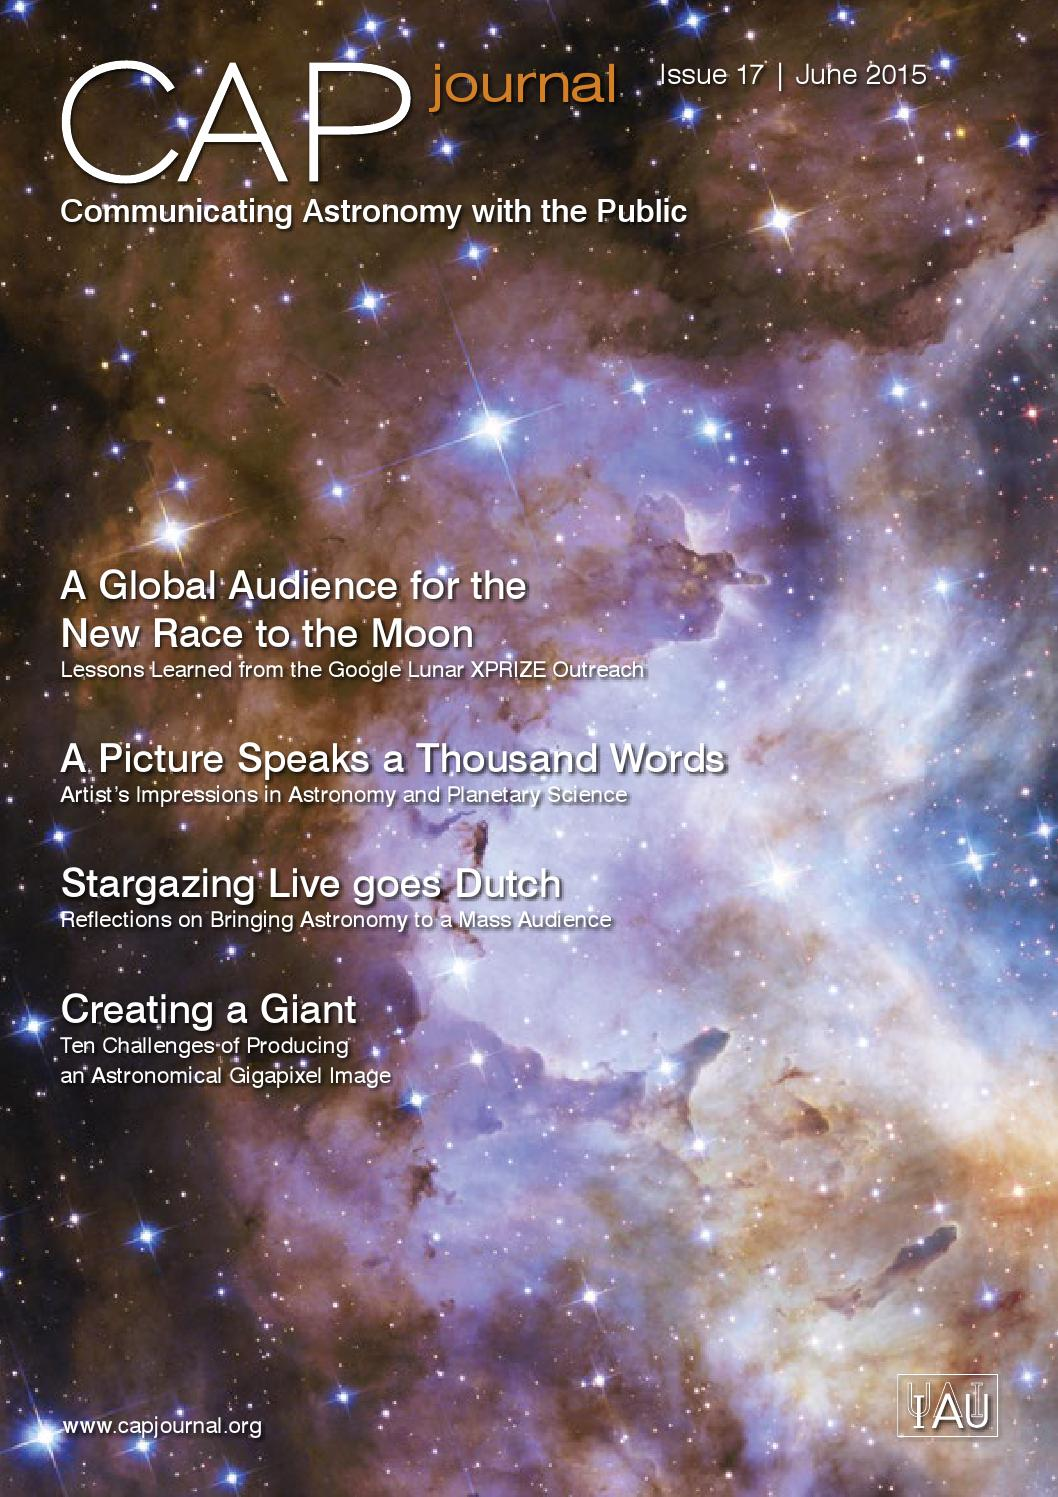 CAPjournal 17 by European Southern Observatory - issuu